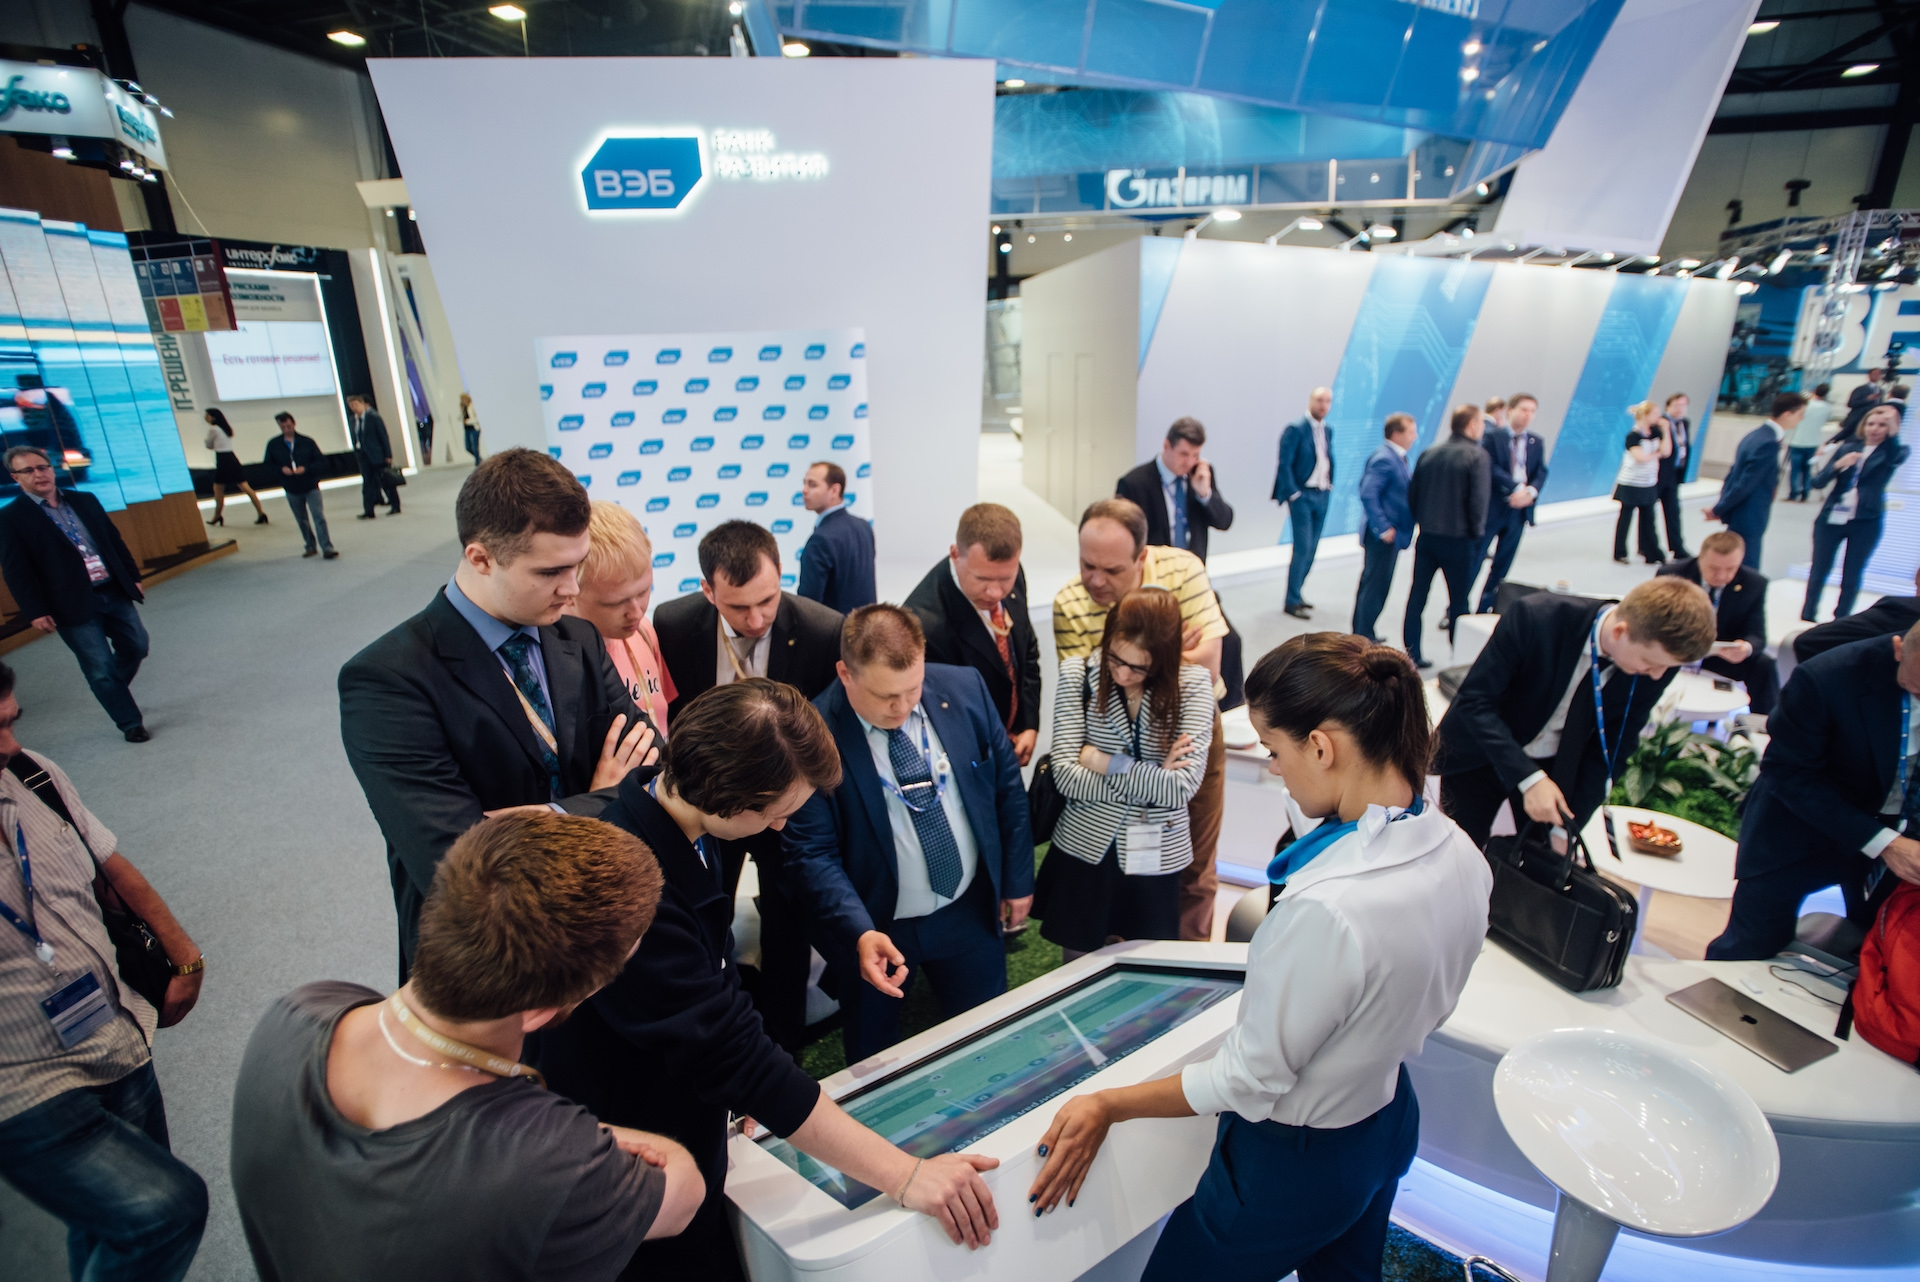 grata-adv-digital-interactiv-spief-2016-rosseti-3